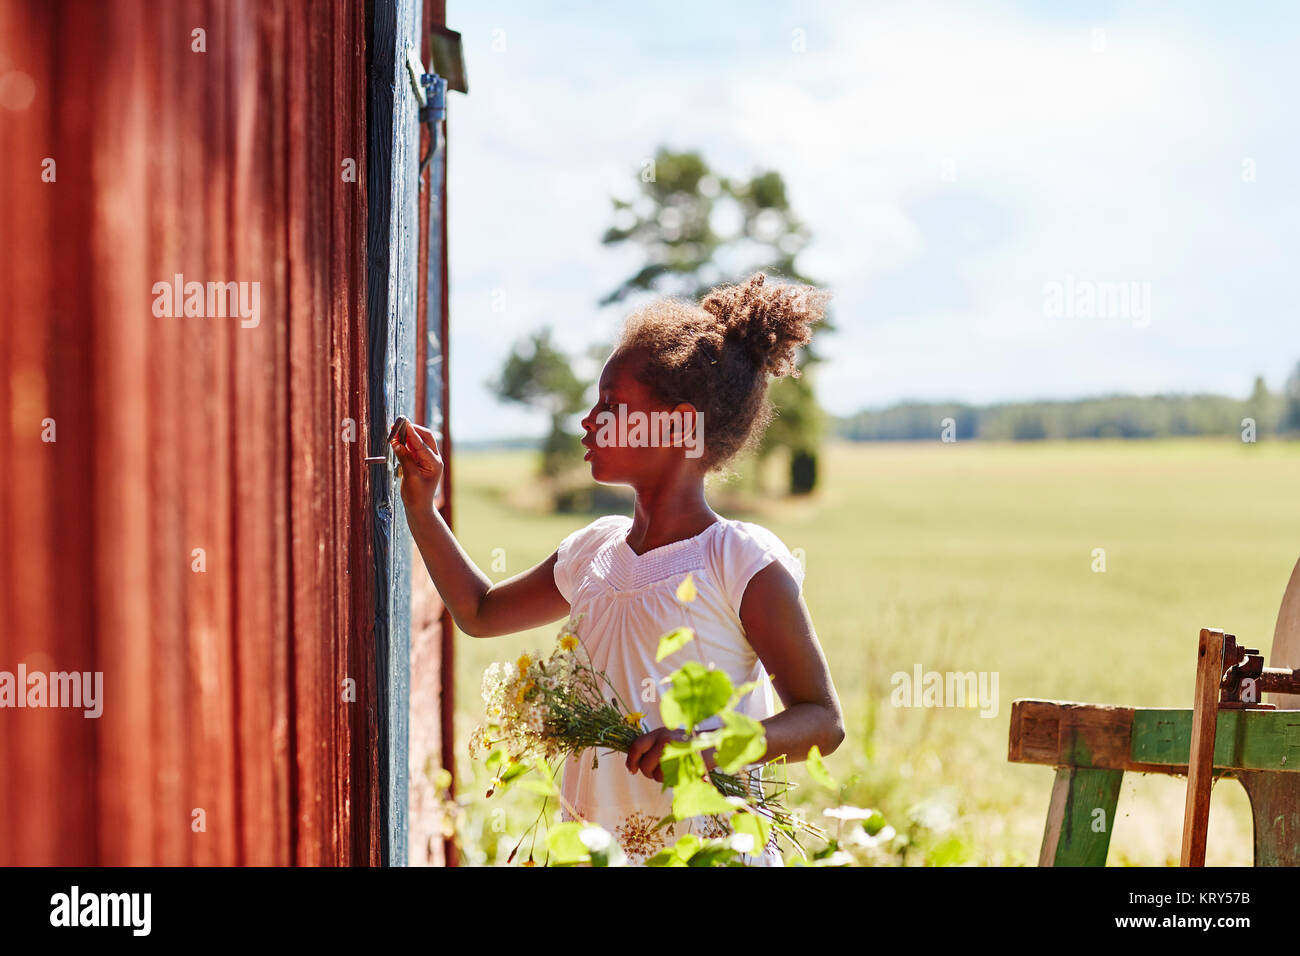 Girl holding flowers by barn - Stock Image